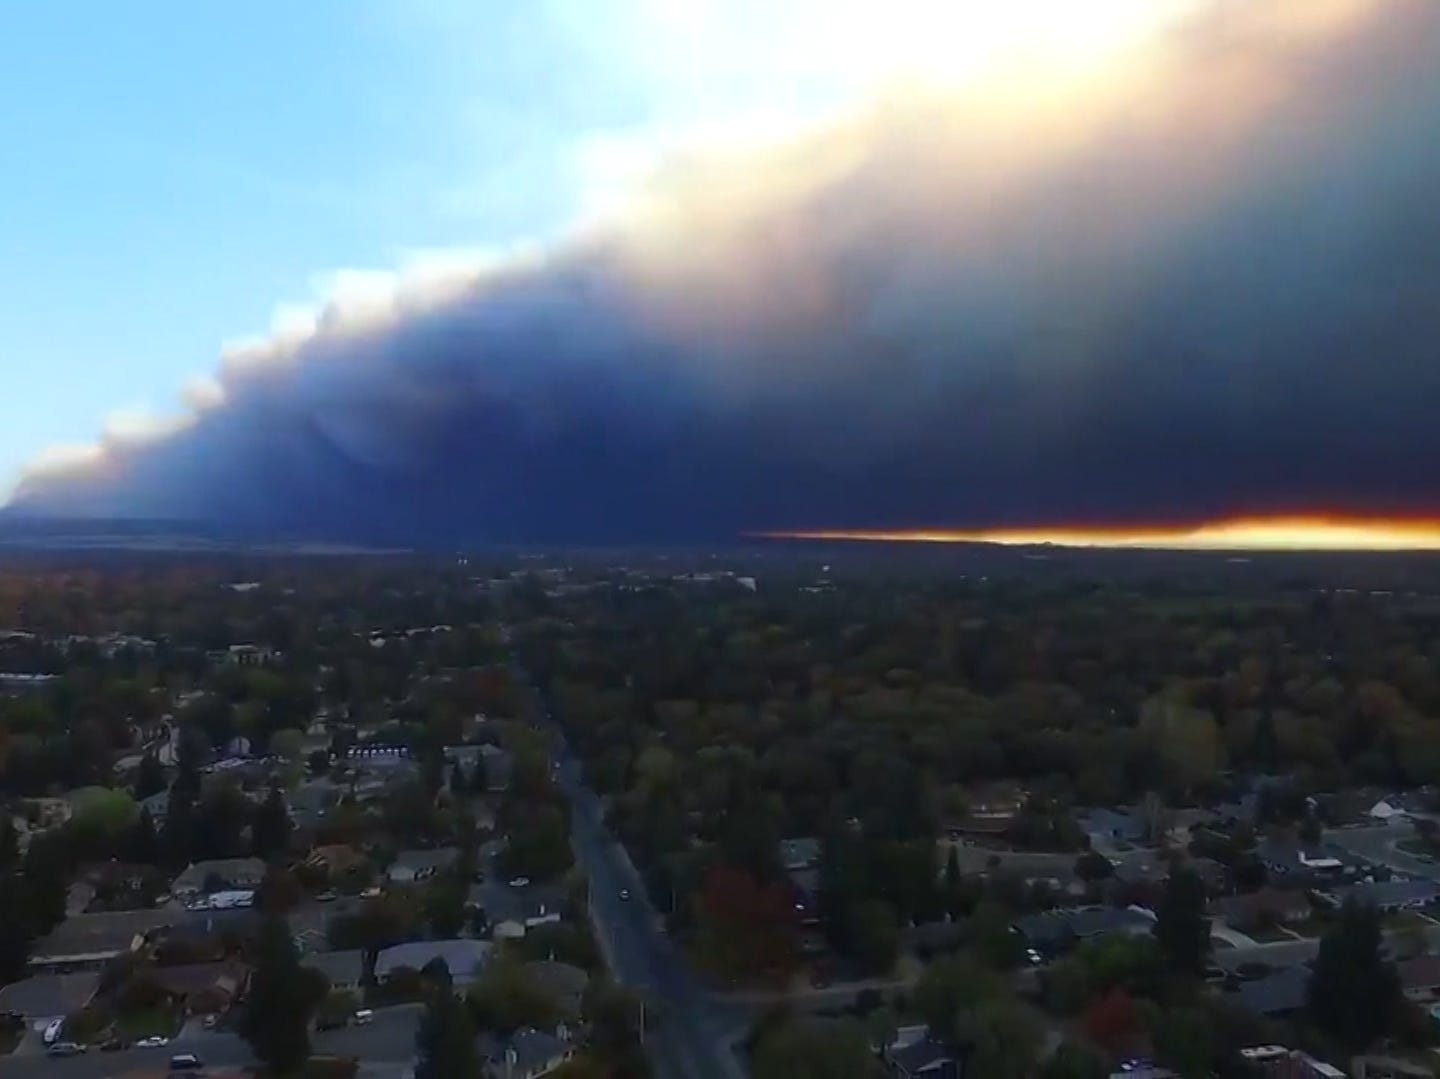 The Camp Fire burning in northern California